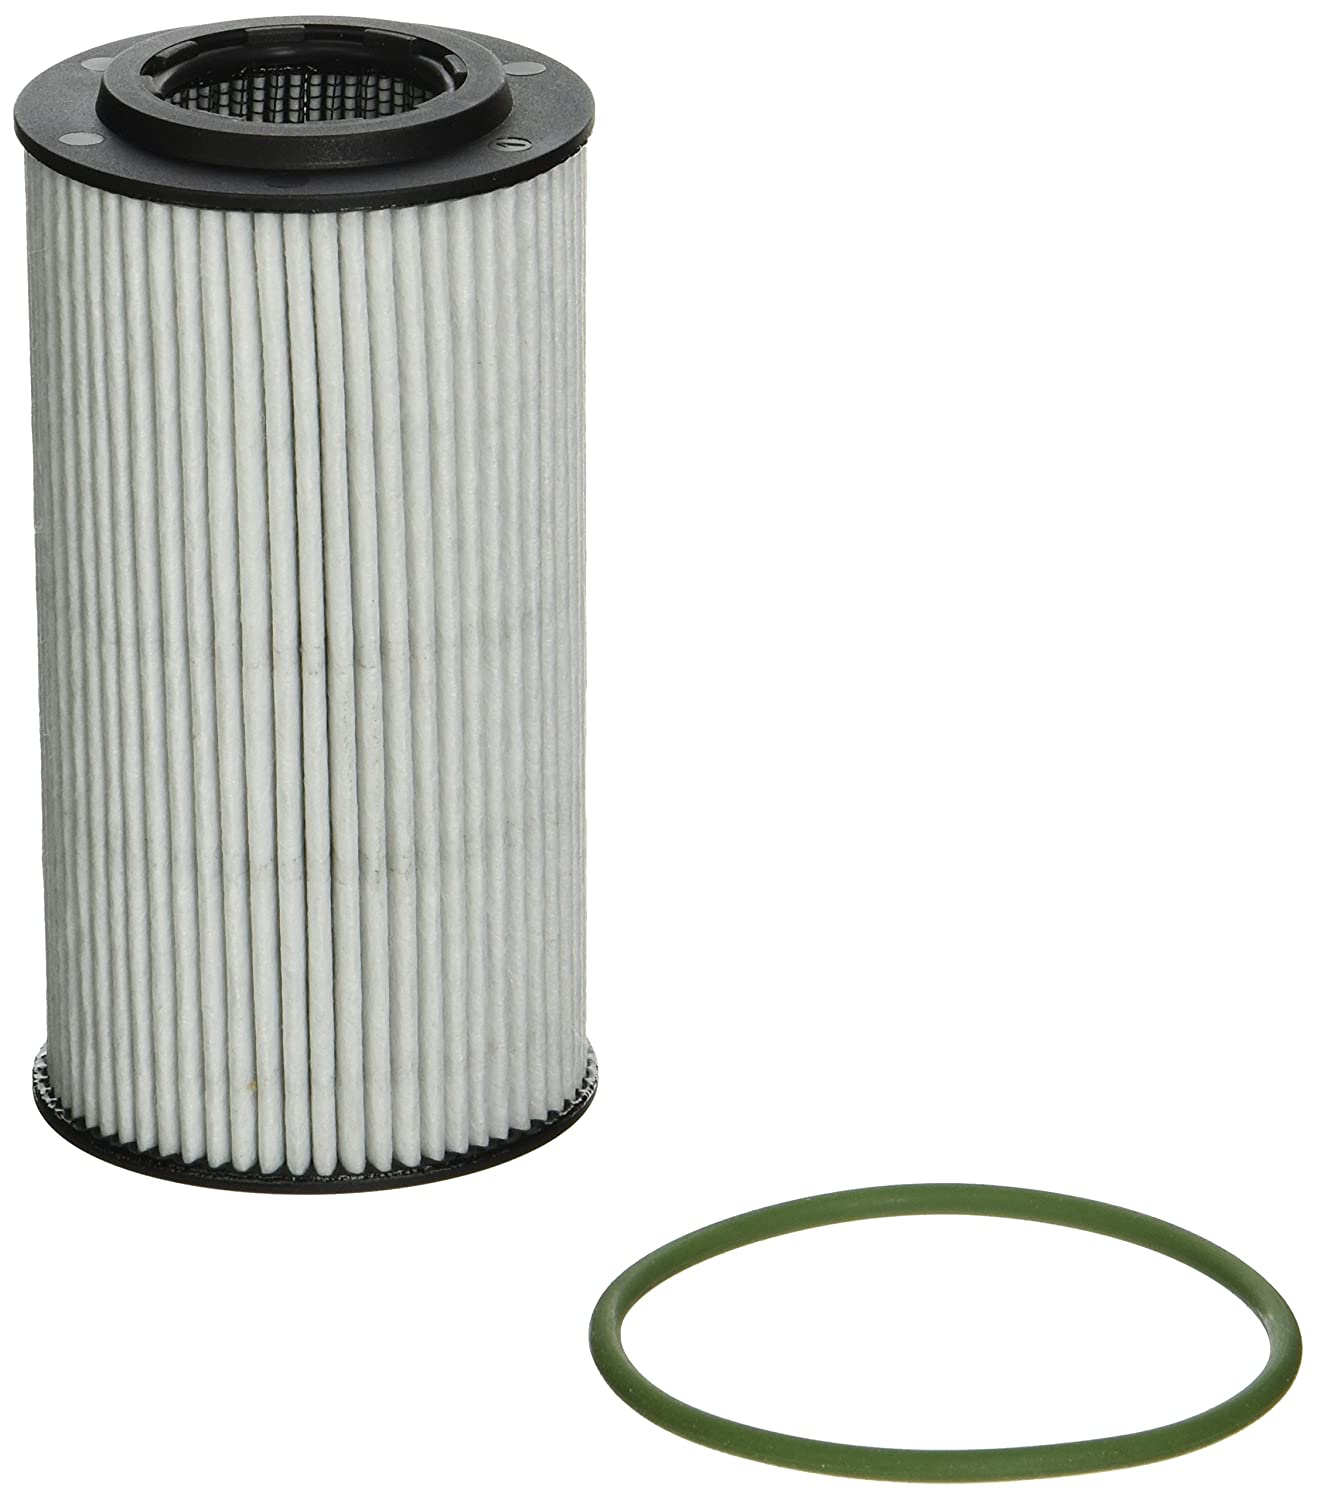 WIX Filters - 57186XP Xp Cartridge Lube Metal Filter, Pack of 1